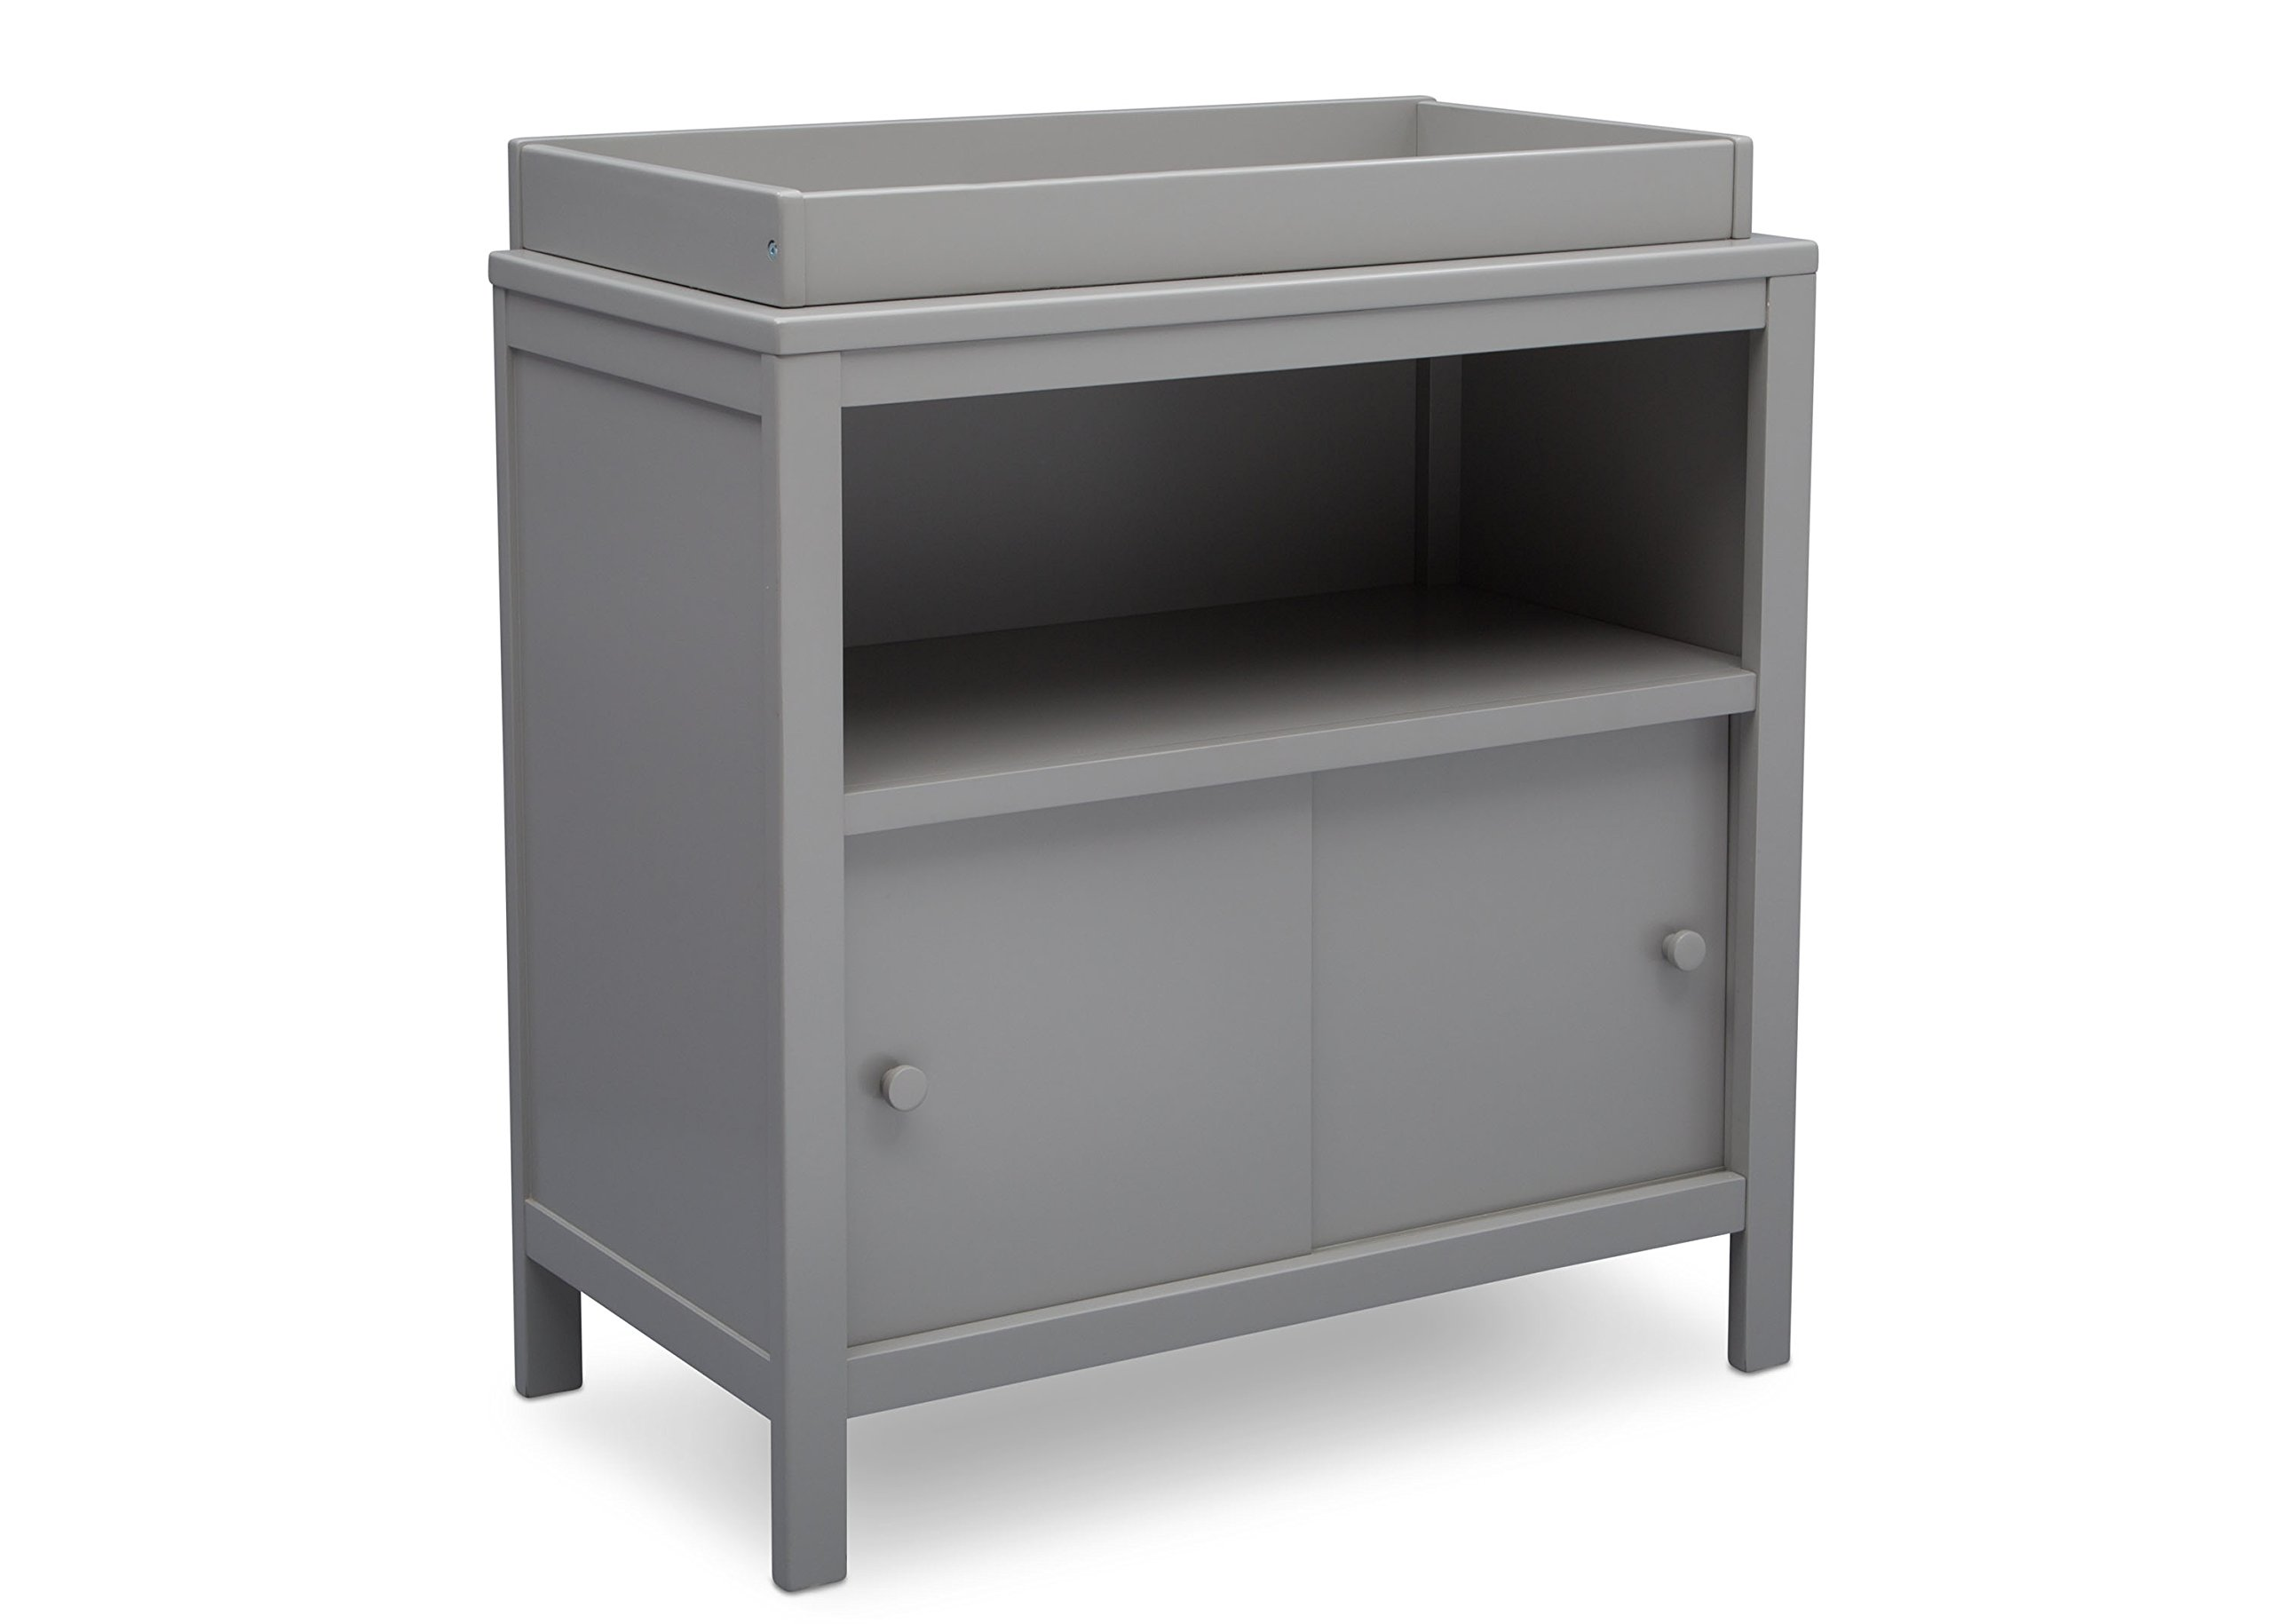 Delta Children Changing Table with Storage Space, Convertible Changing Unit, Grey